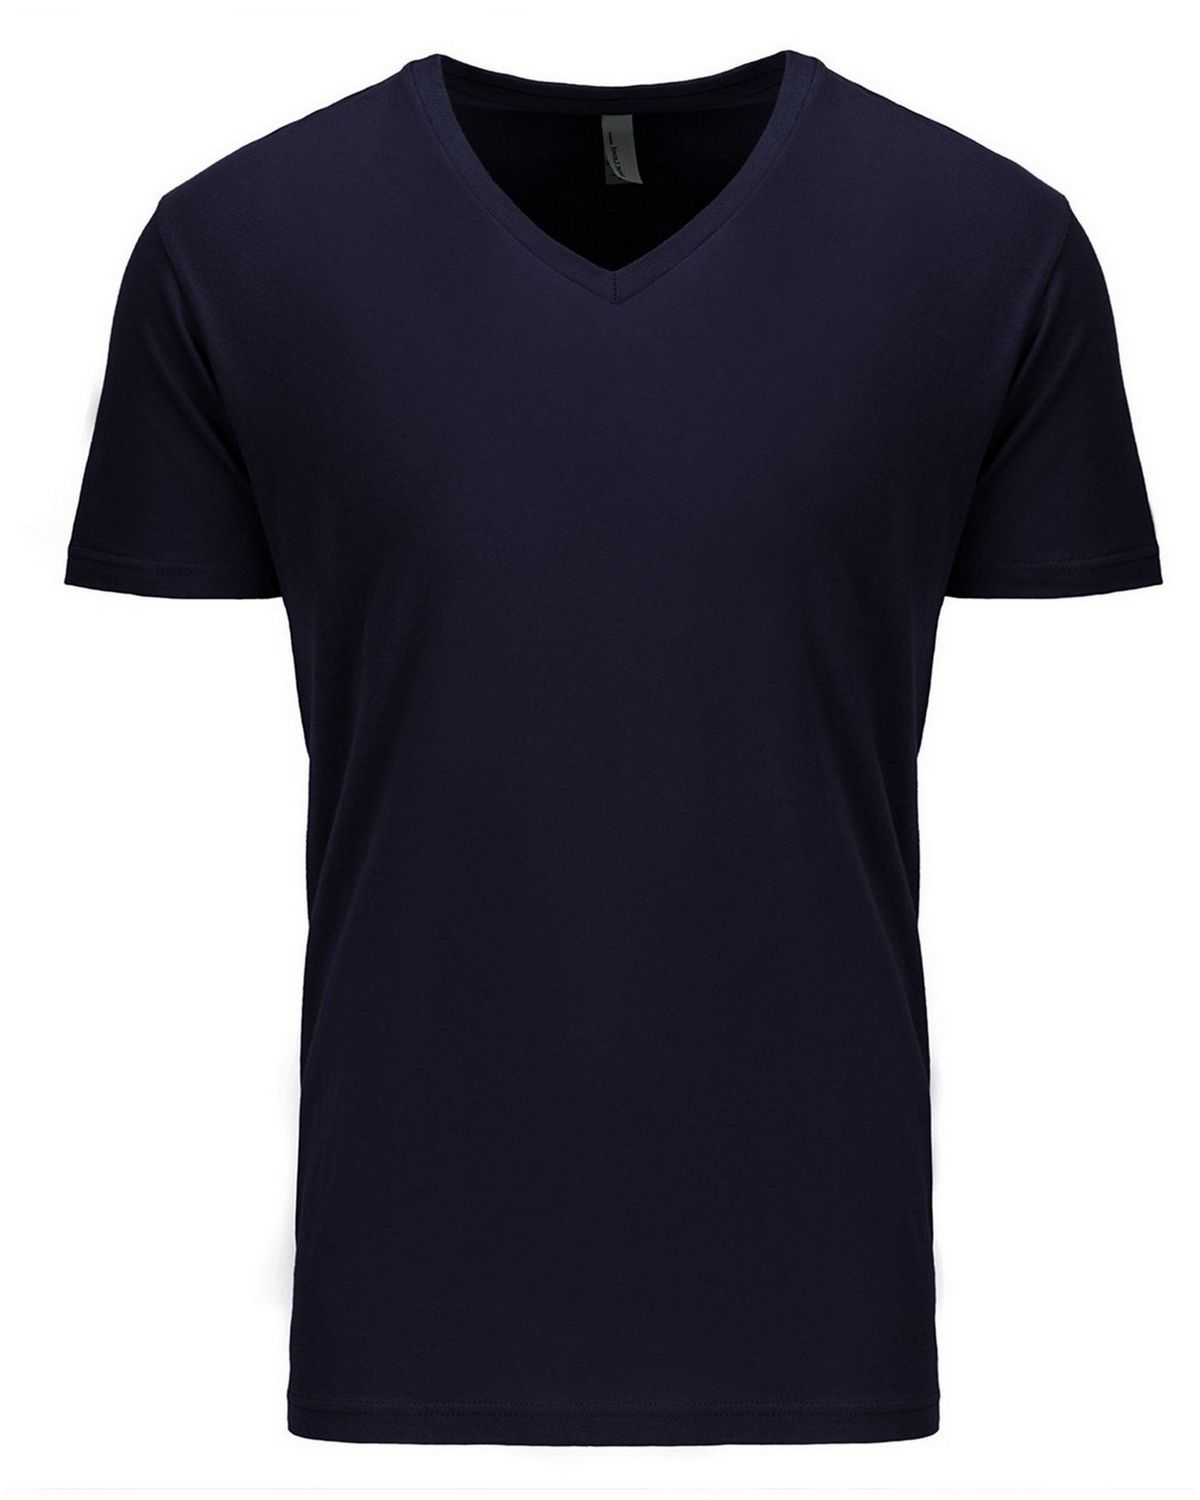 Next Level NL3200 Short Sleeve V-Neck Tee - Royal - XS NL3200